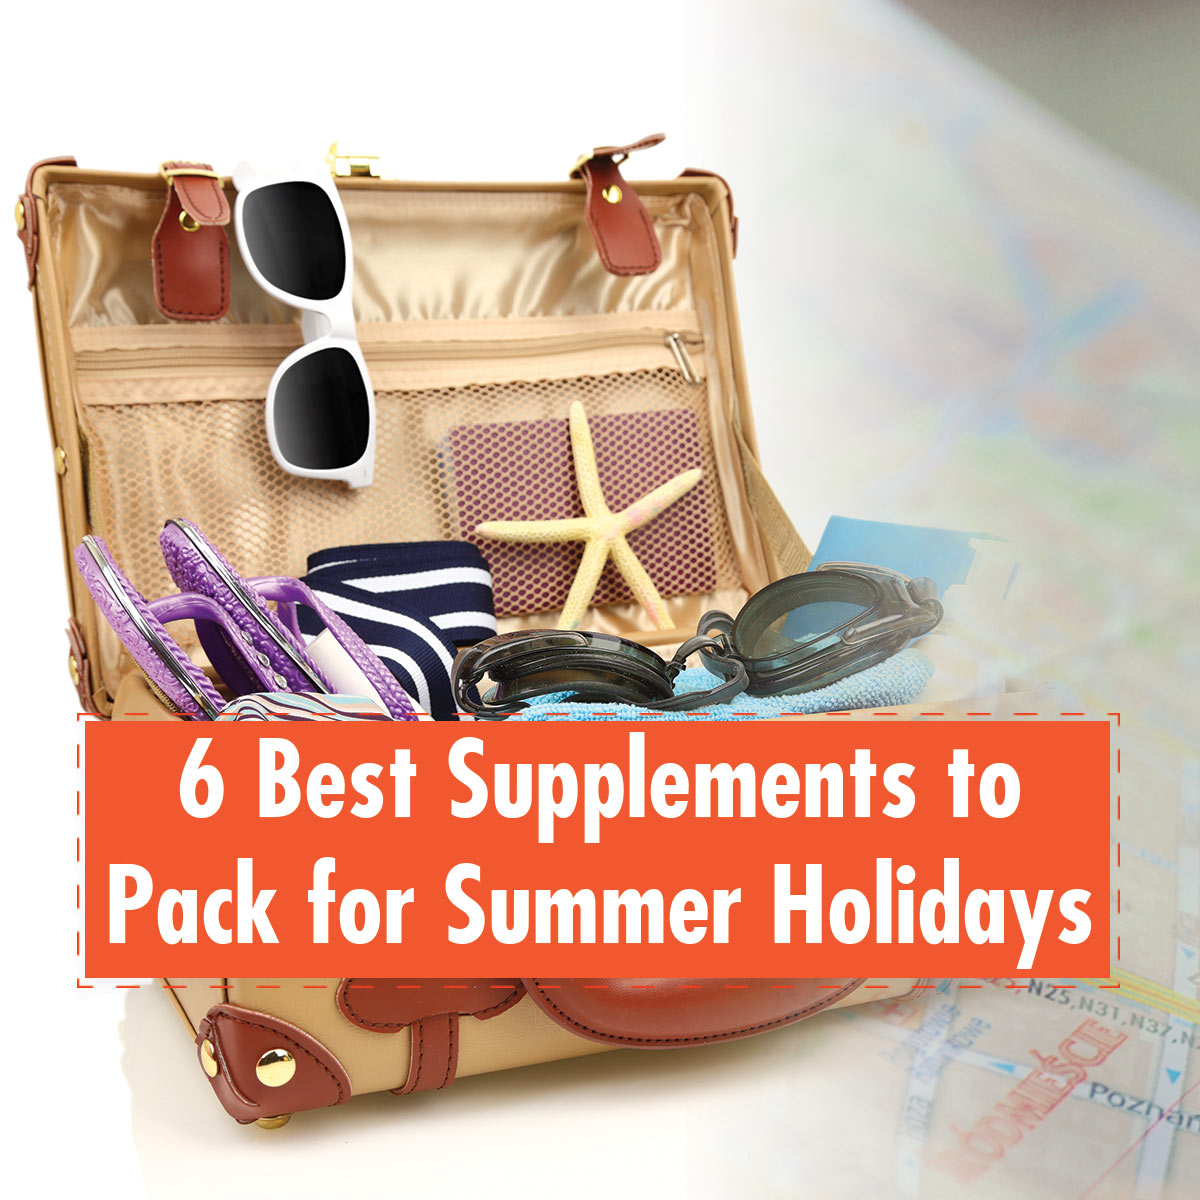 6 Best Supplements to Pack for Summer Holidays